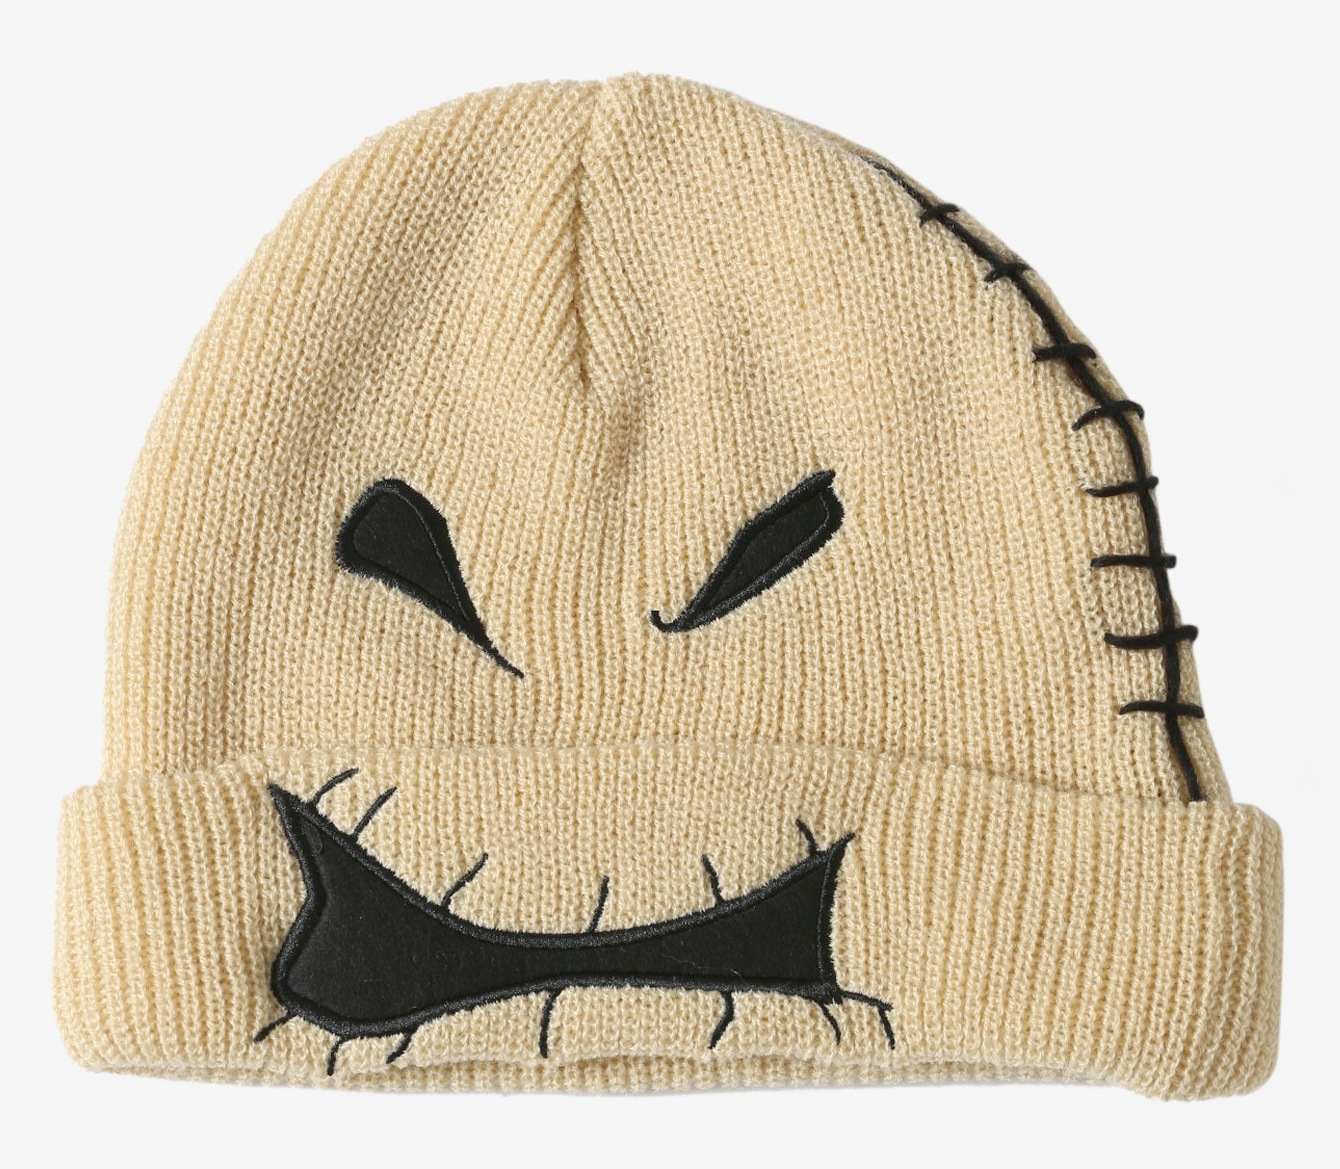 ebdd395769cb6 New Disney The Nightmare Before Christmas Oogie Boogie Face Watchman Beanie  Hat. click thumbnails above to enlarge